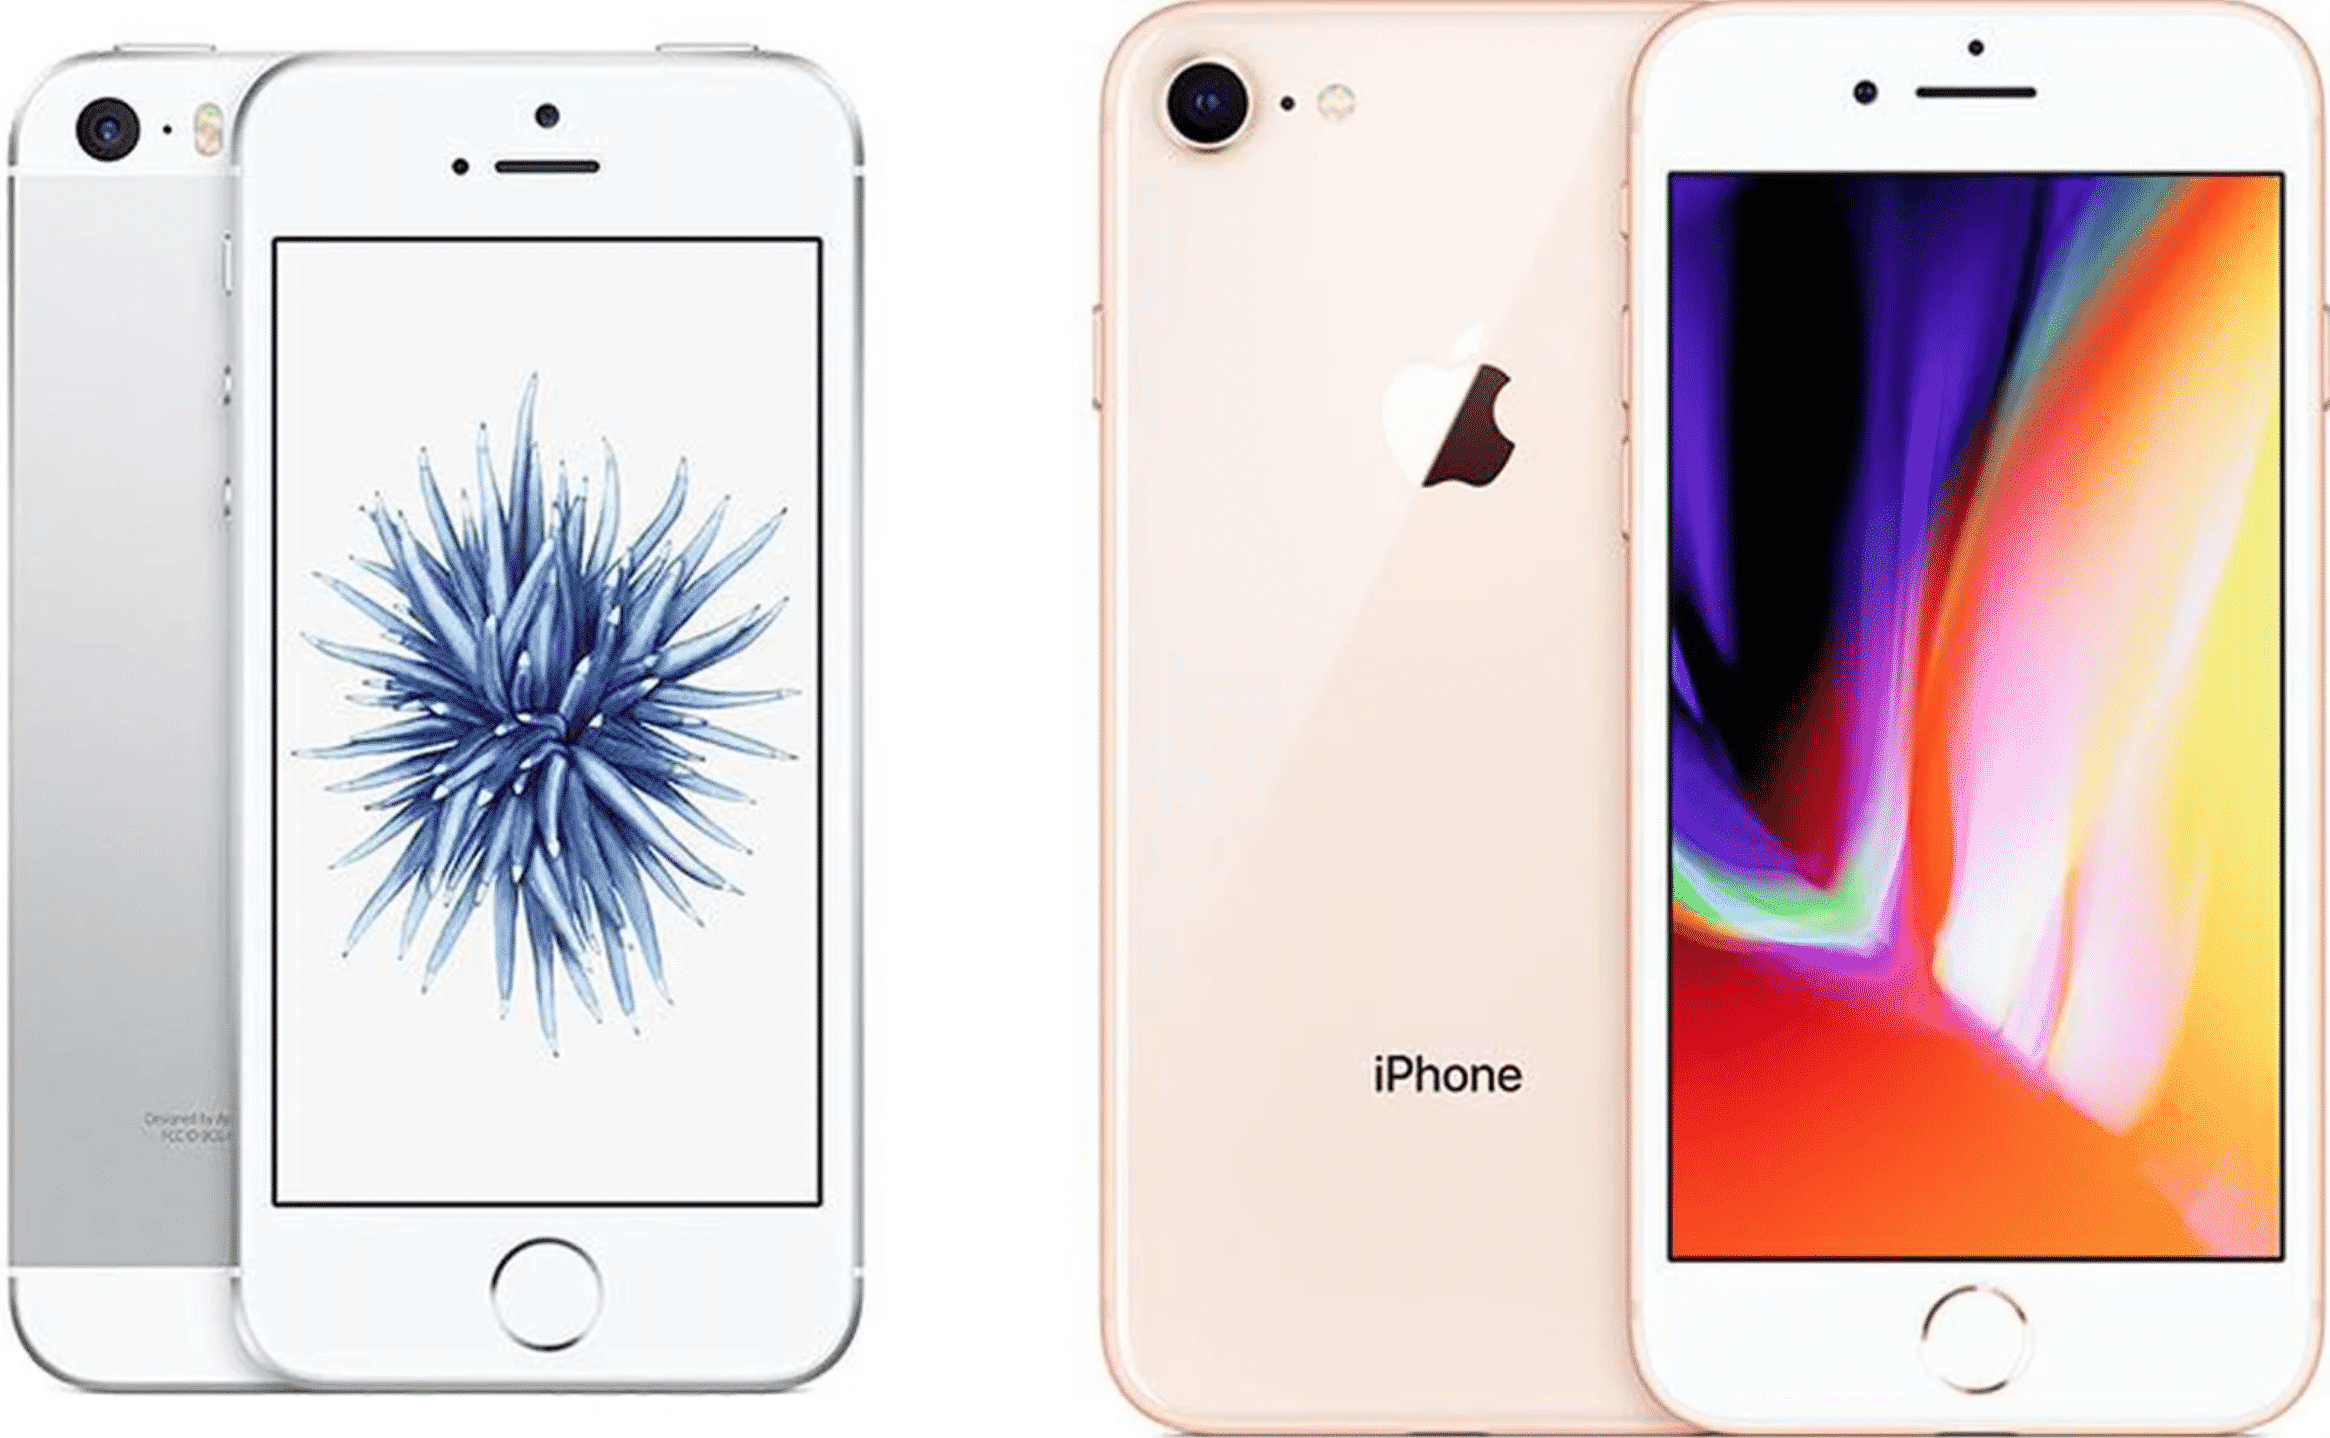 Budget iPhone May Come Out with a $399 Price Tag